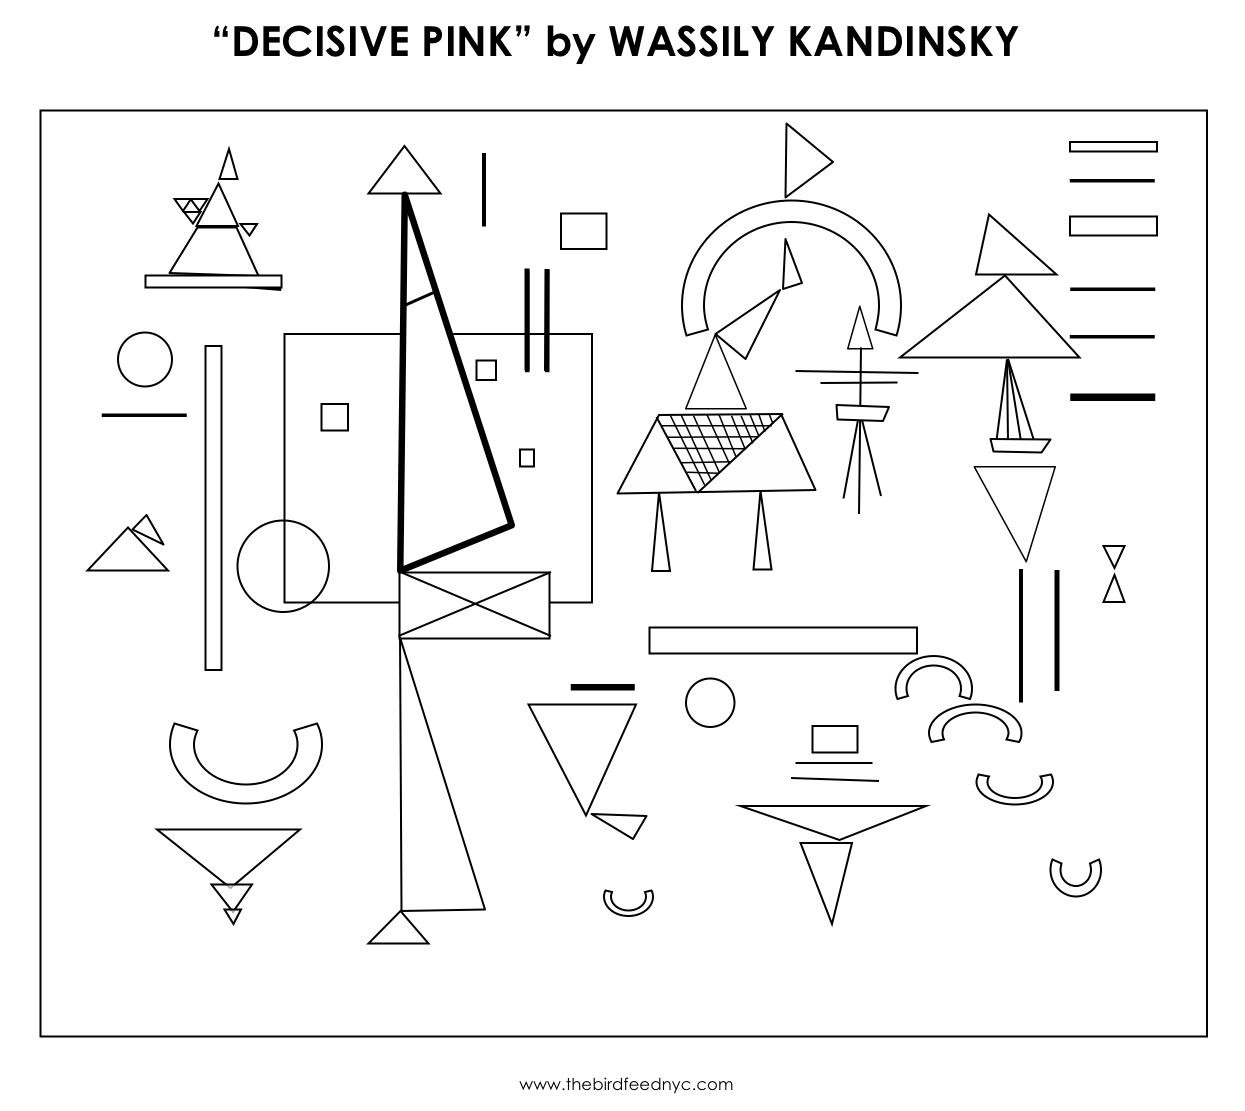 kandinsky coloring activity for kids